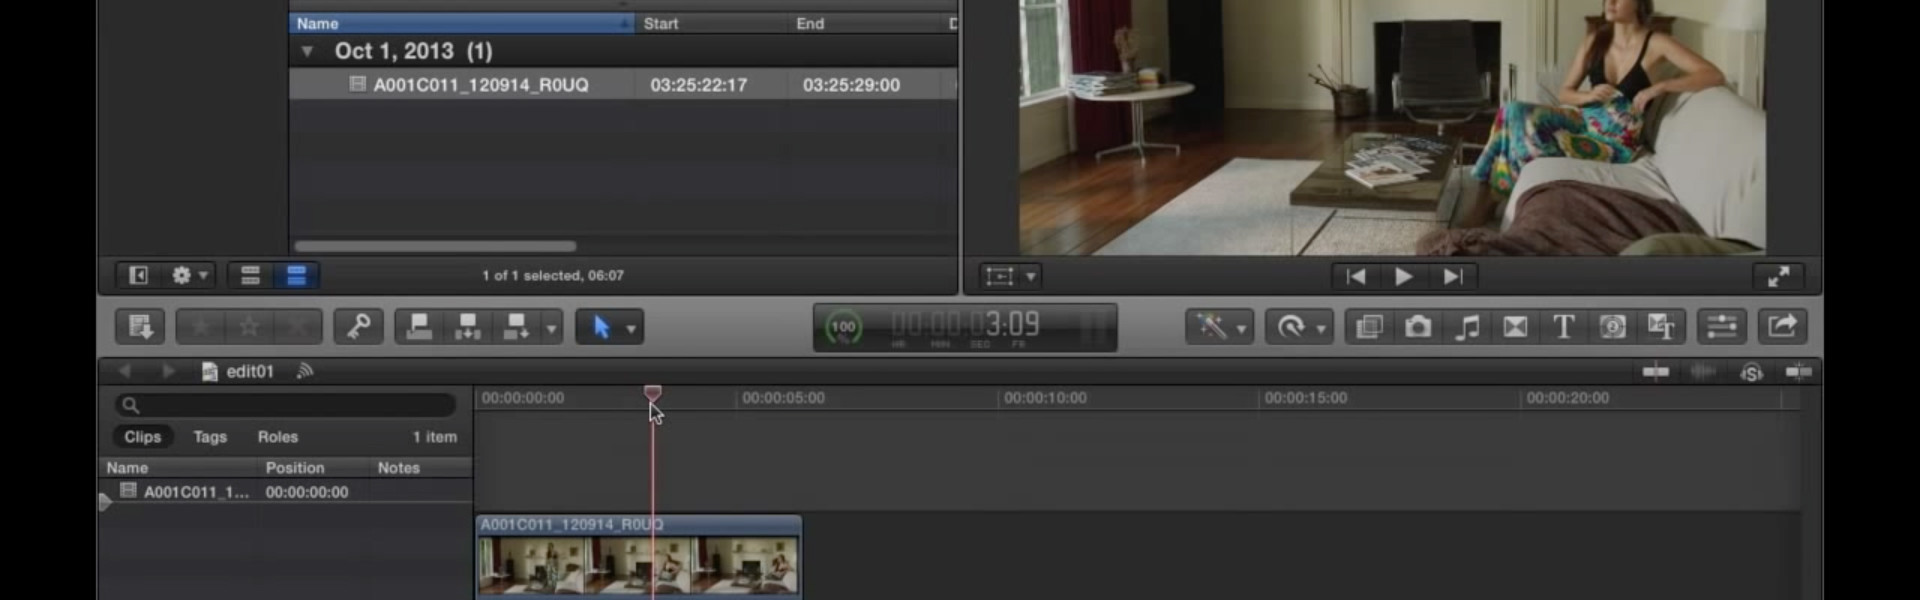 Viewing ALEXA Log C Footage in Final Cut Pro X | Tutorials & Guides